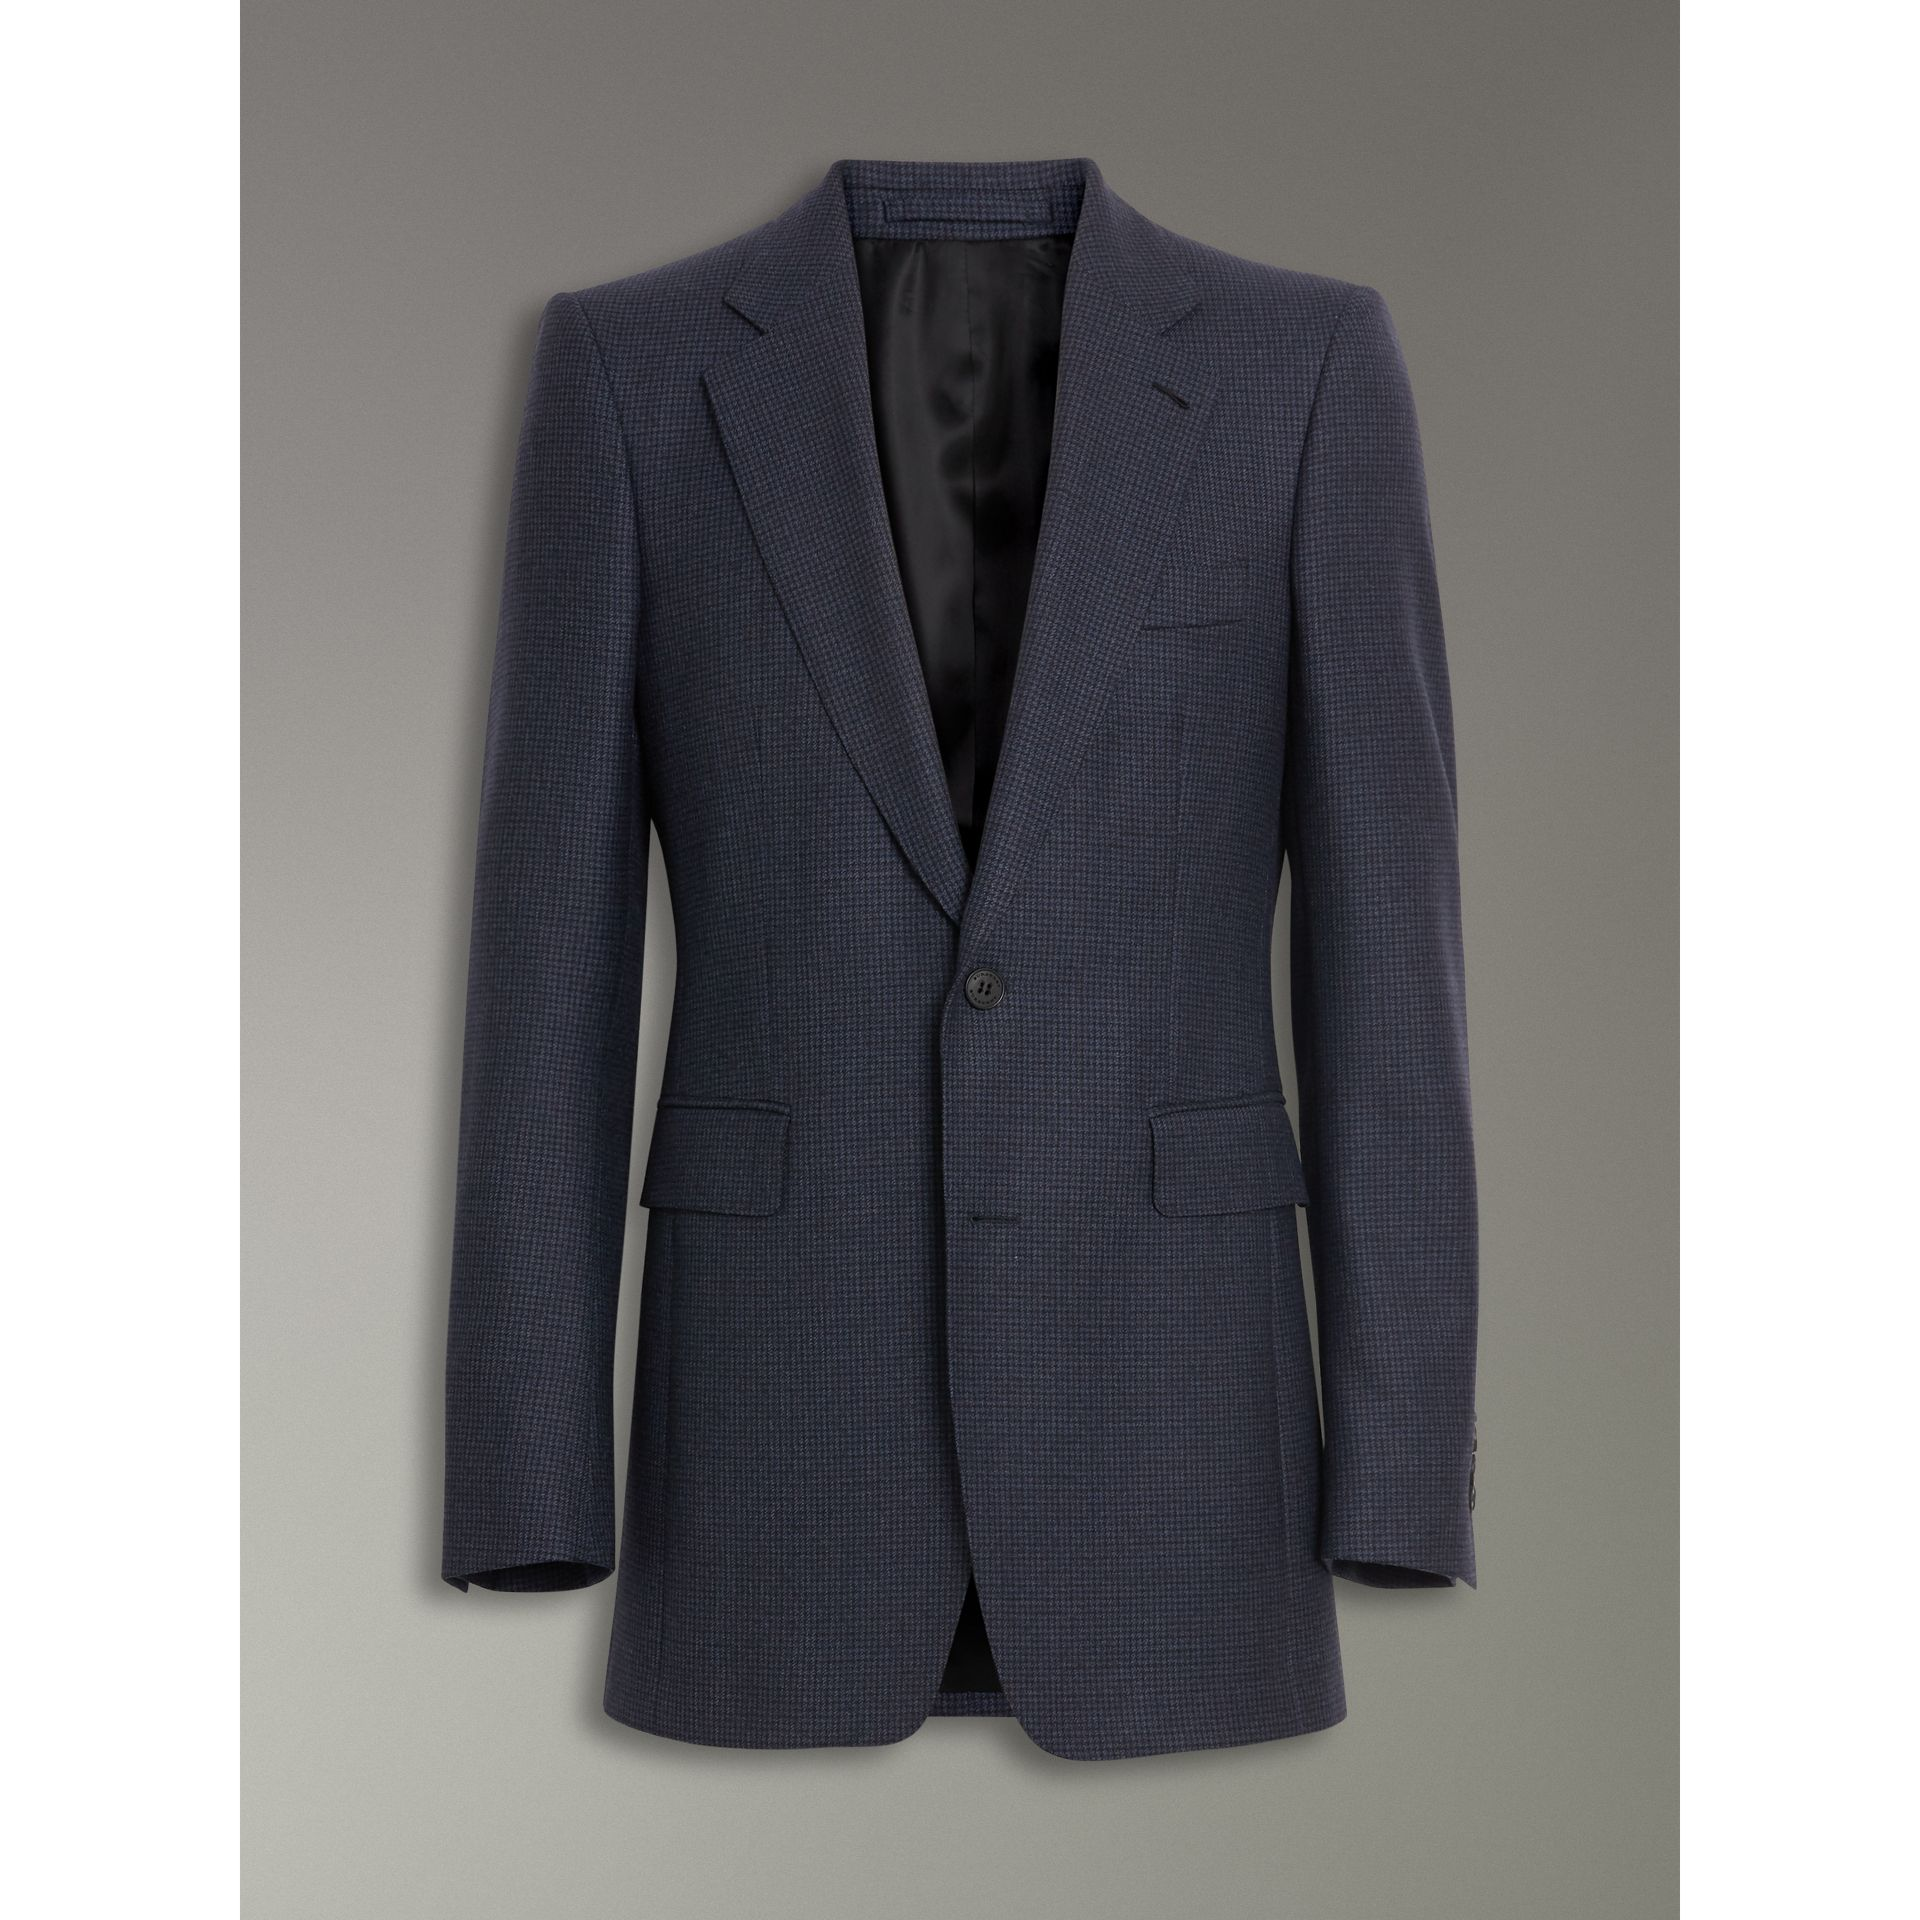 Slim Fit Puppytooth Wool Suit in Navy - Men | Burberry - gallery image 3